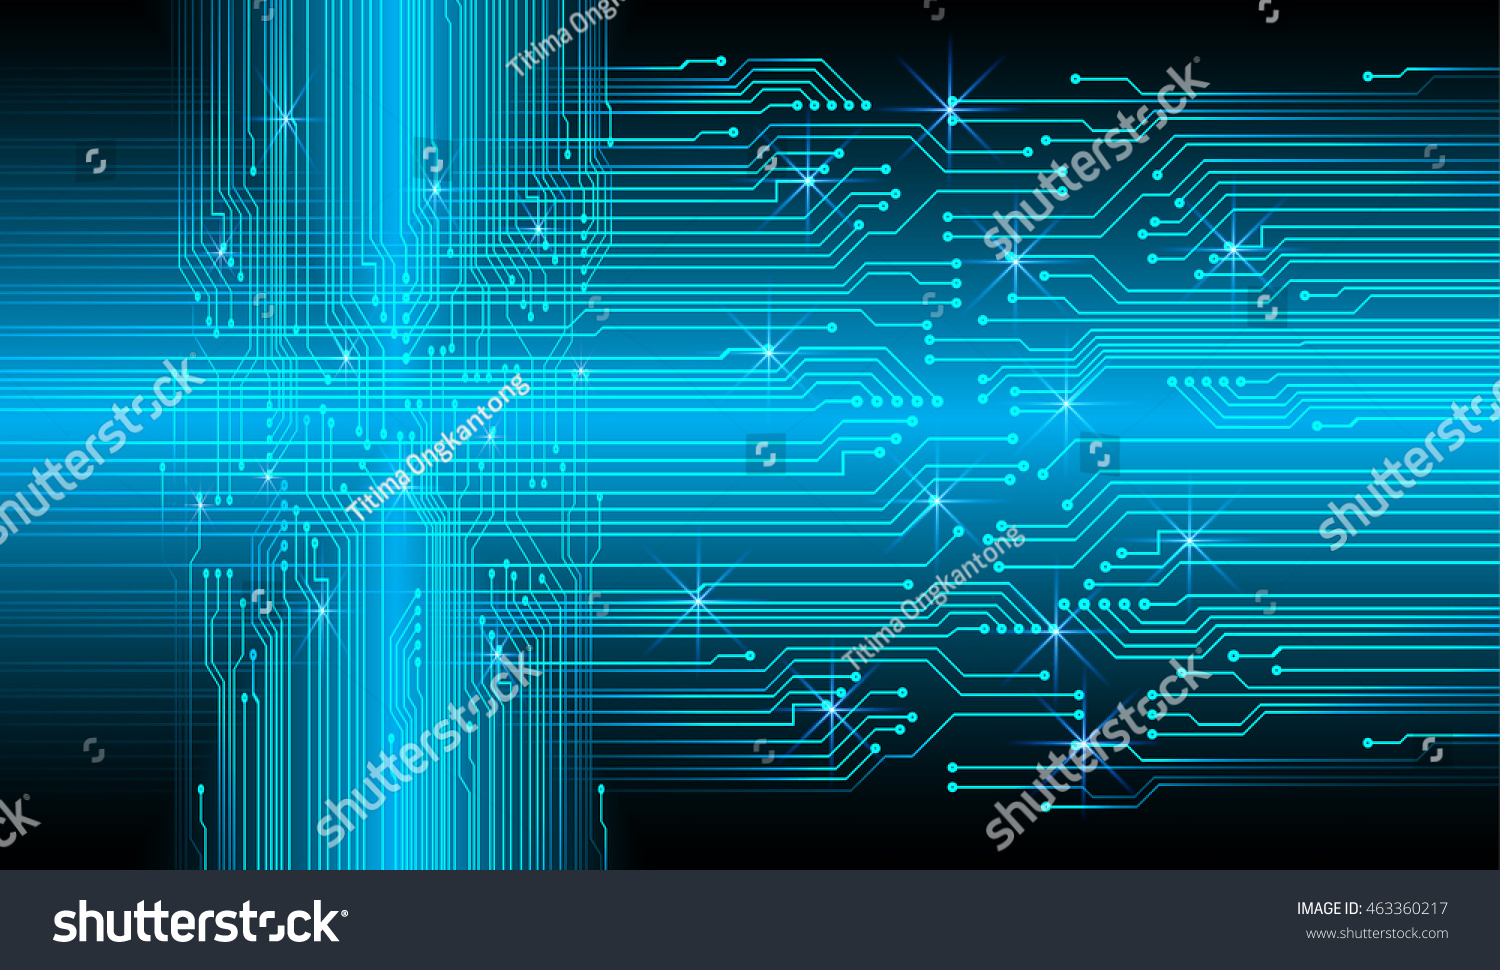 Blue Abstract Cyber Future Technology Concept Background Abstact With Circuit Board And Binary Code Stock Images Id 463360217